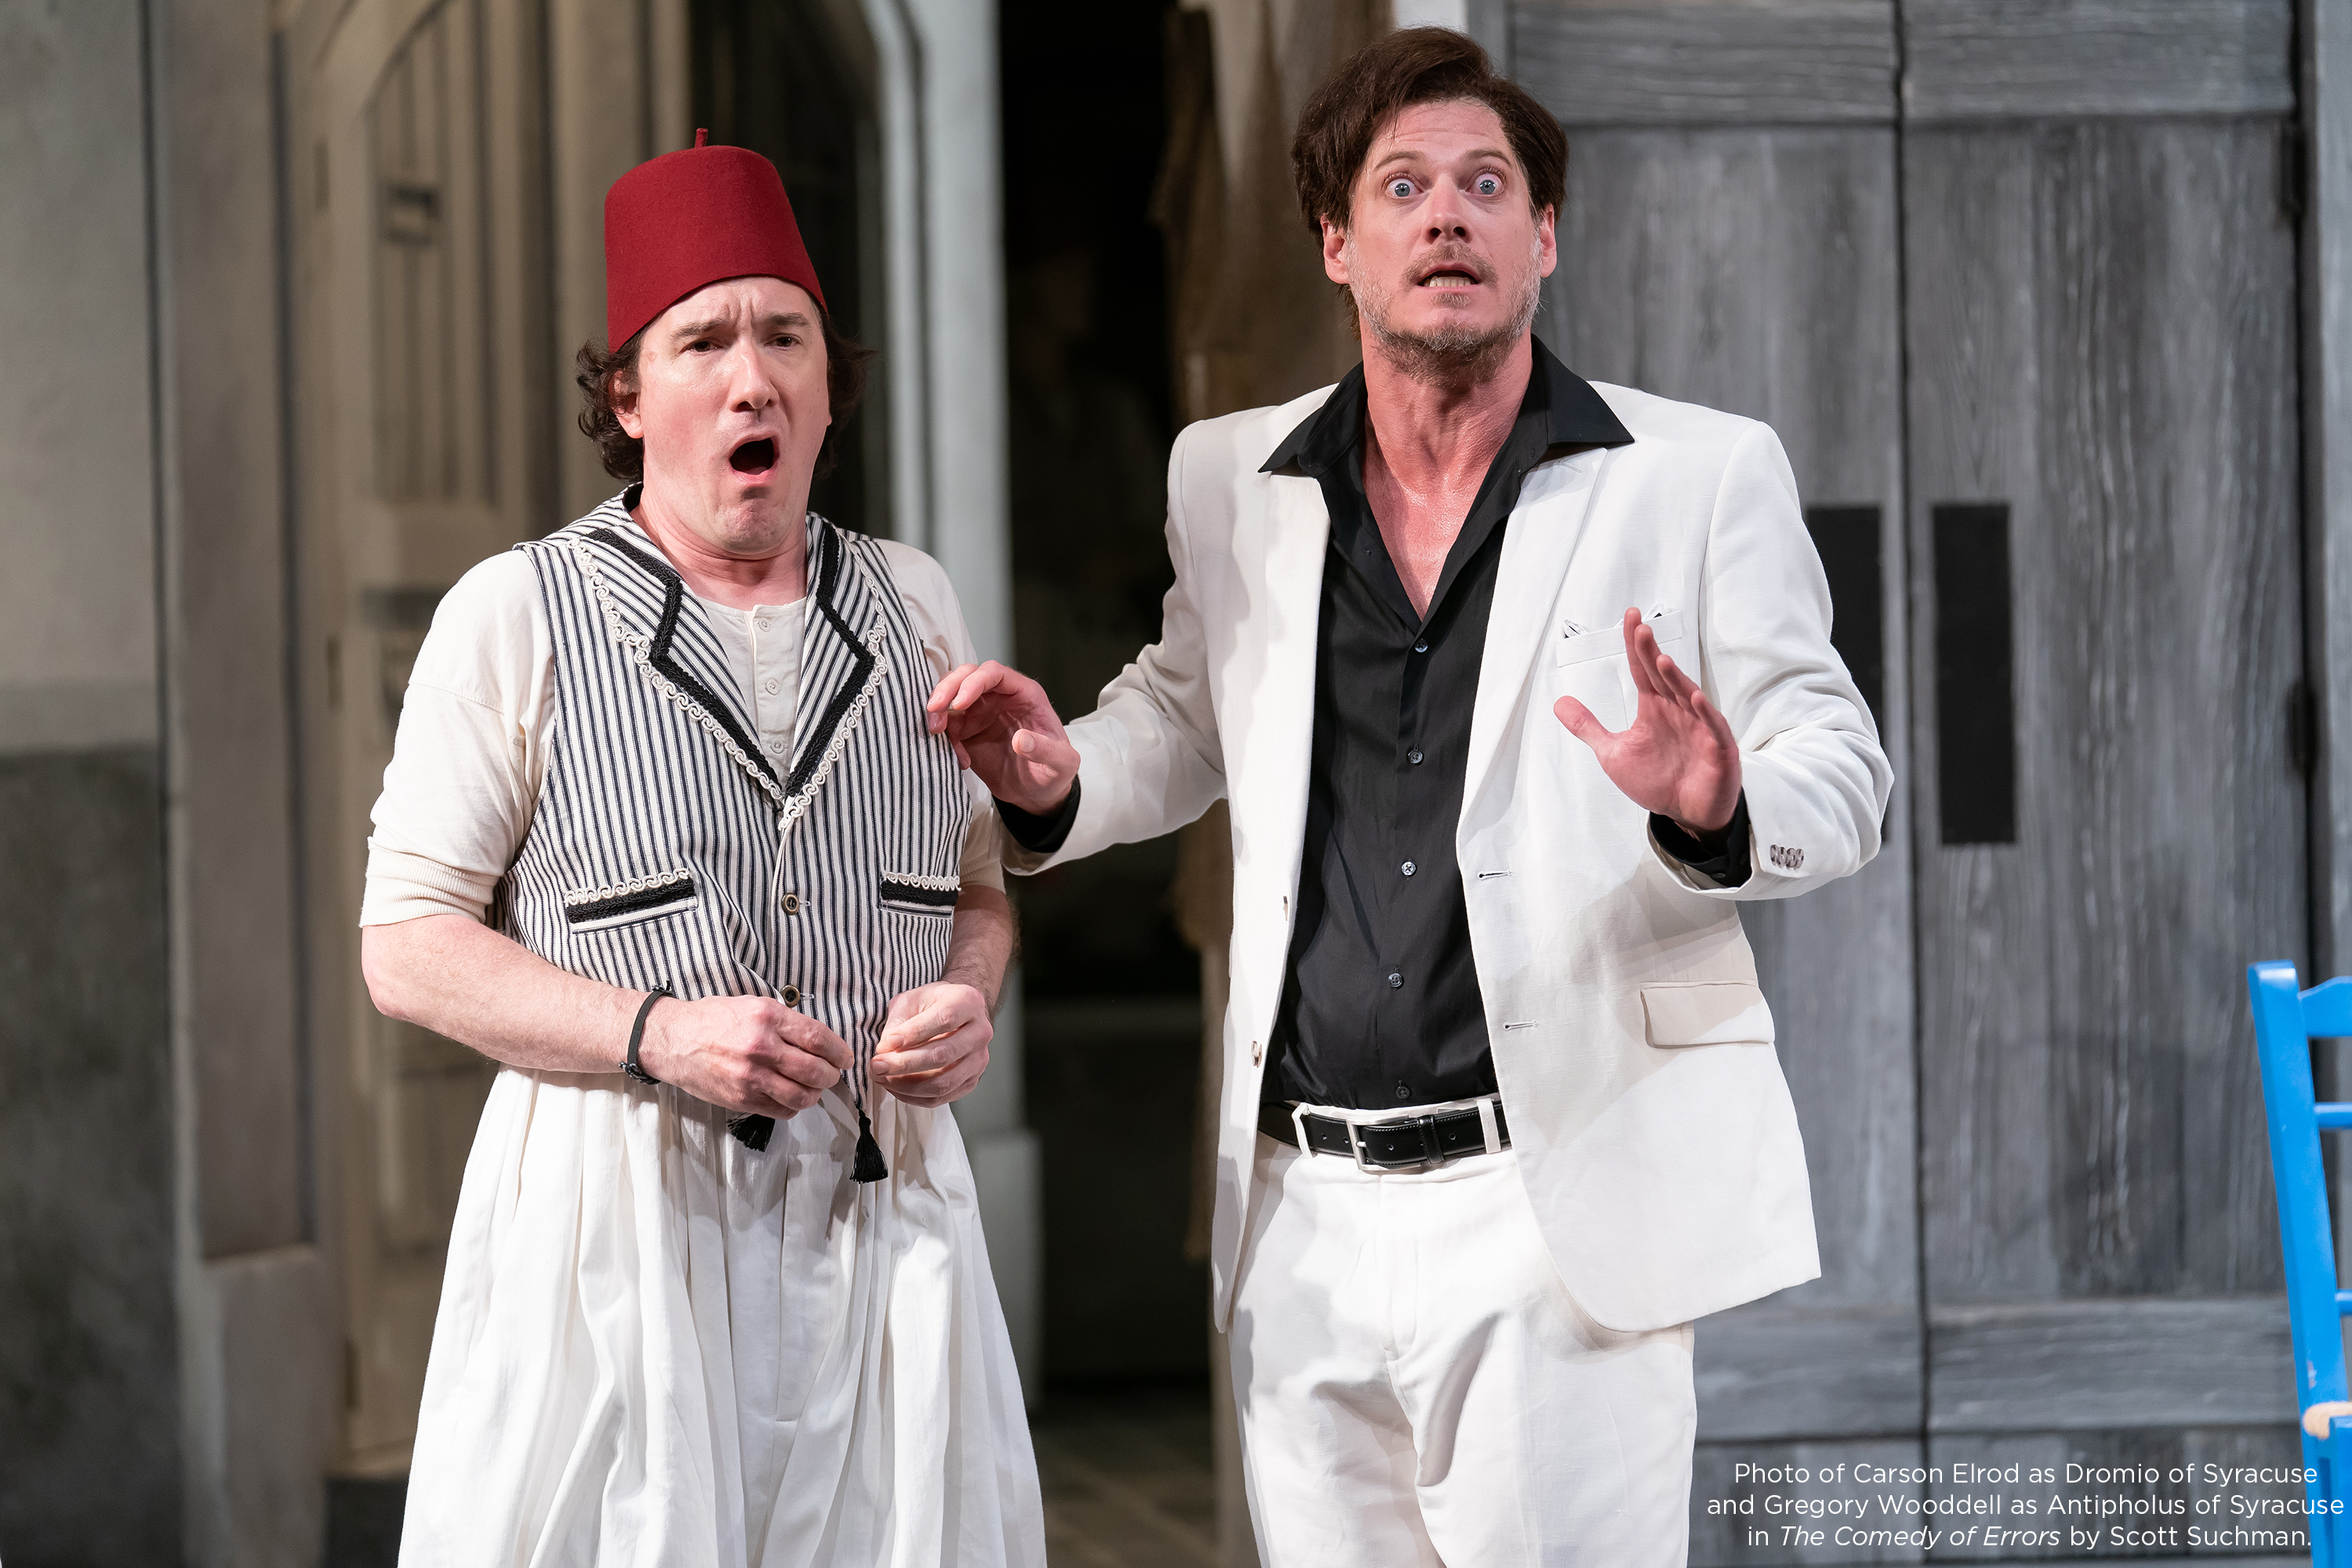 Photo of Carson Elrod as Dromio of Syracuse and Gregory Wooddell as Antipholus of Syracuse in The Comedy of Errors by Scott Suchman.